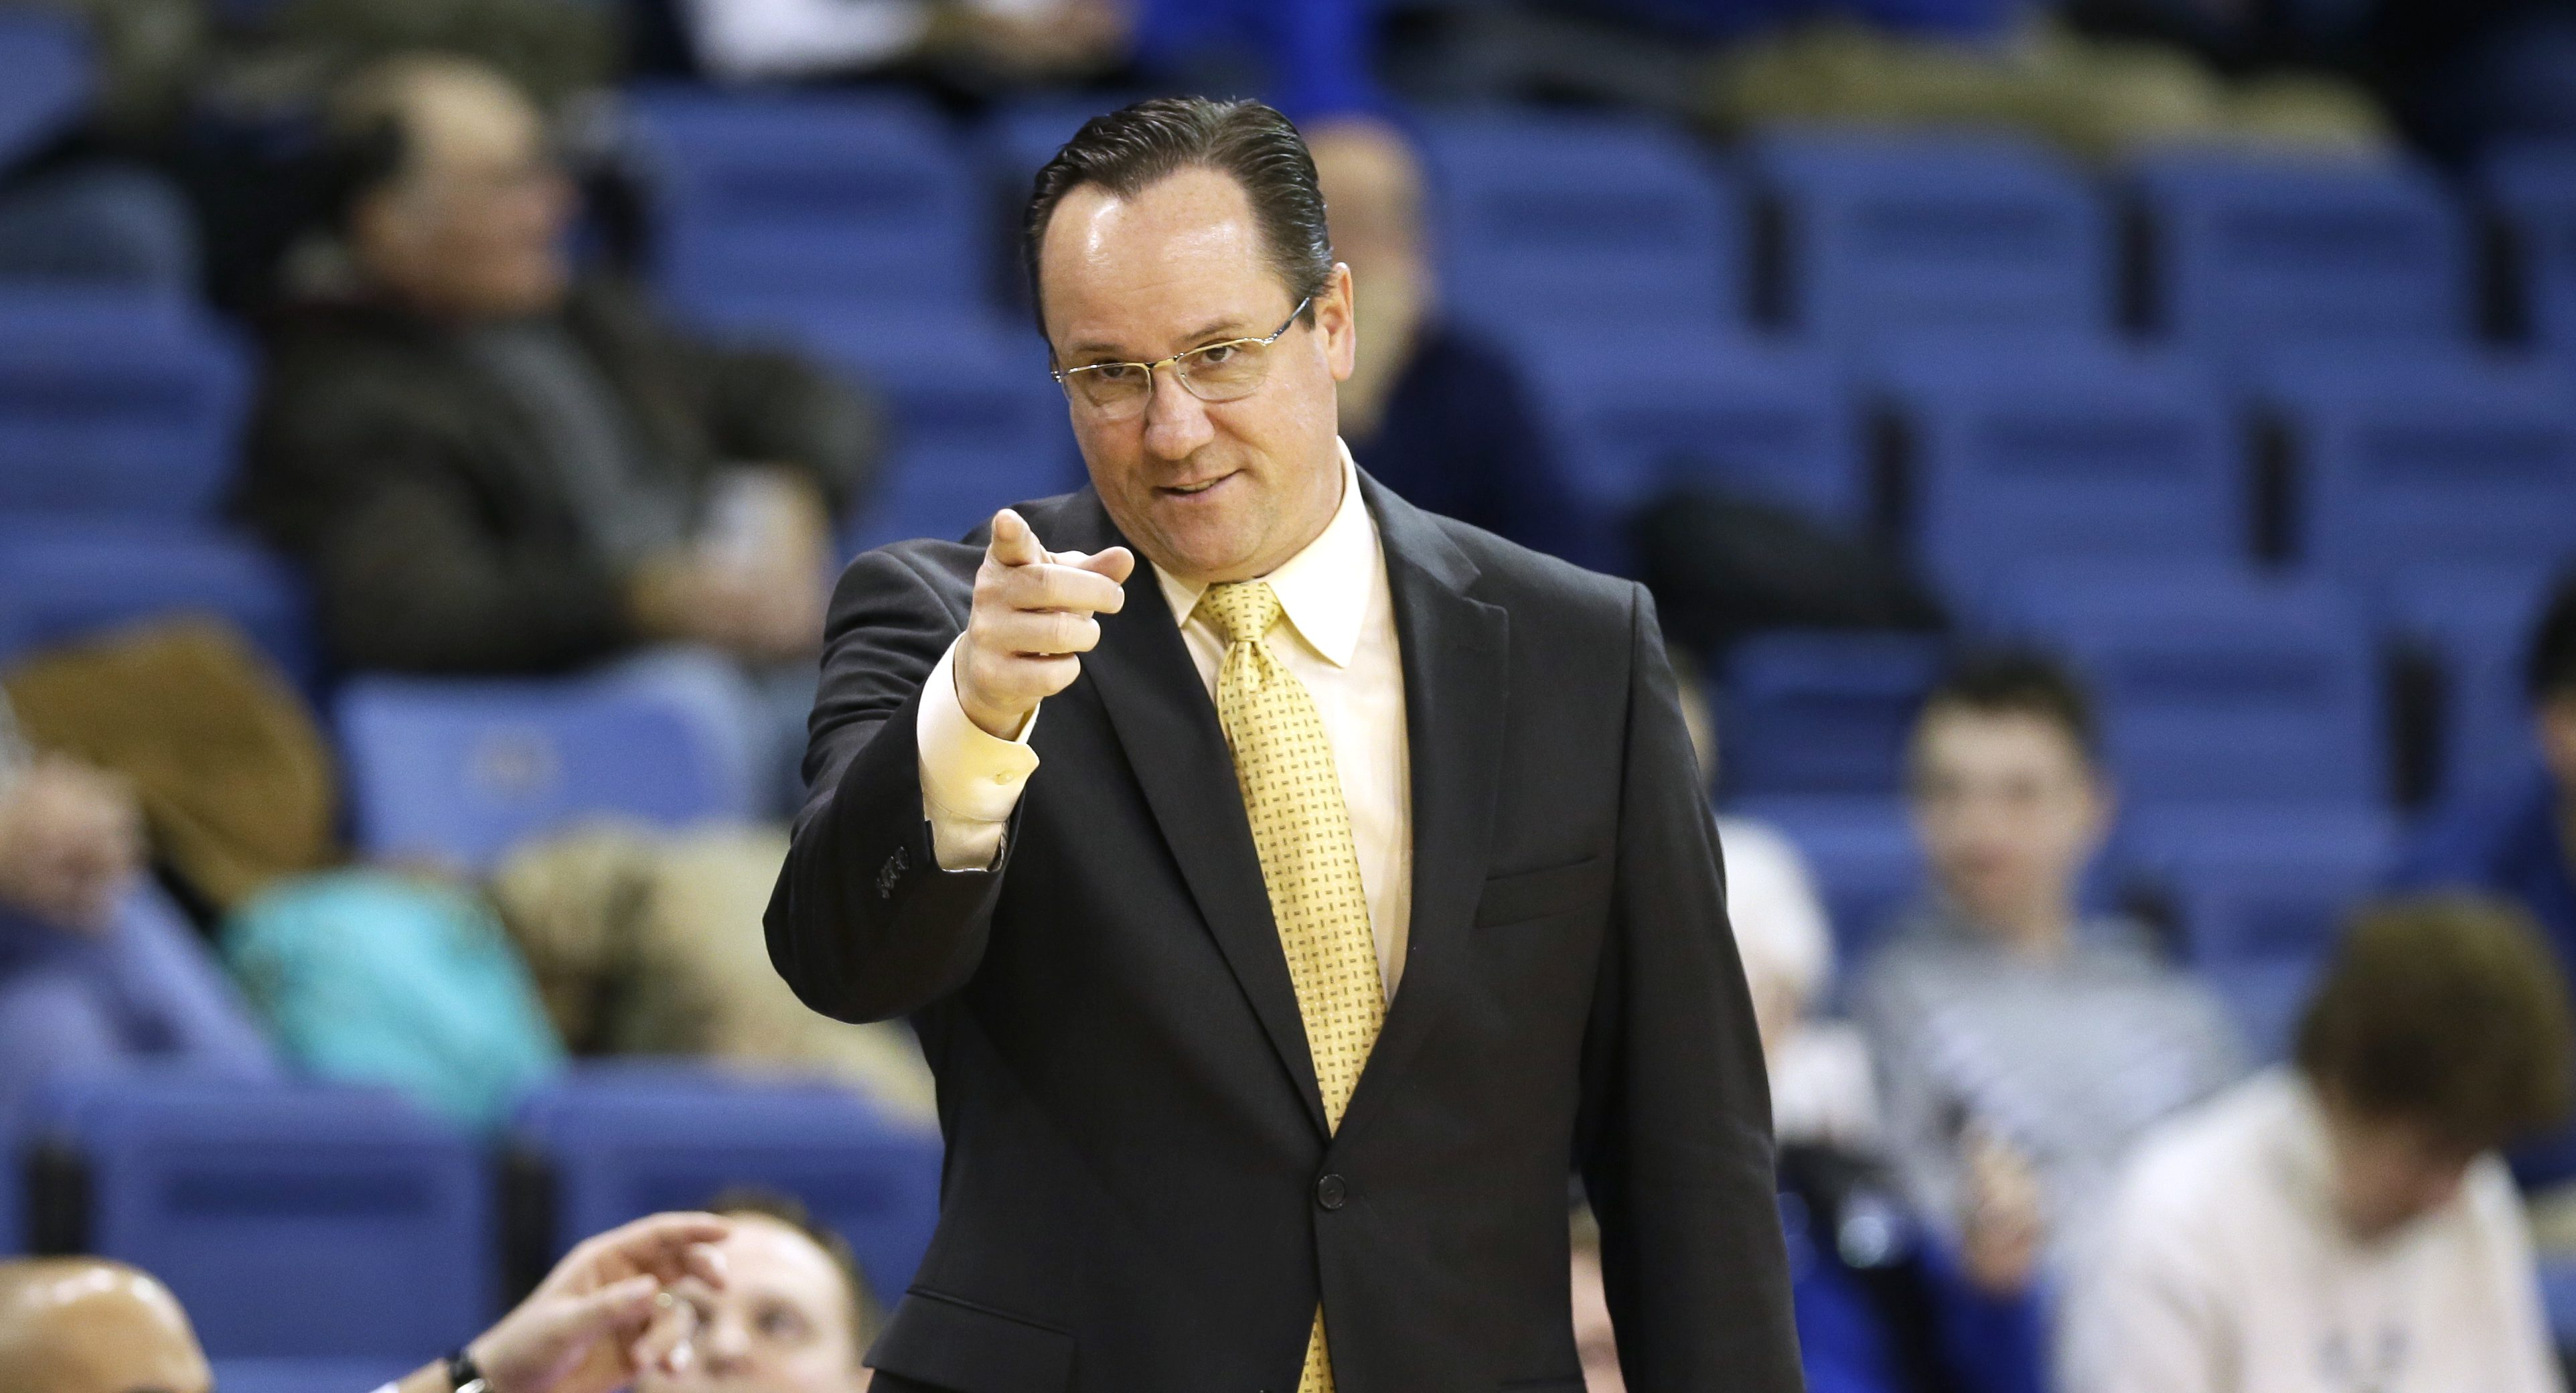 FILE - In this Feb. 9, 2016, file photo, Wichita State head coach Gregg Marshall directs his team during the second half of an NCAA college basketball game against Drake, in Des Moines, Iowa. At this time of year college basketball coaches often sound like political candidates looking for votes as they tout their teams' NCAA tournament worthiness. (AP Photo/Charlie Neibergall, File)